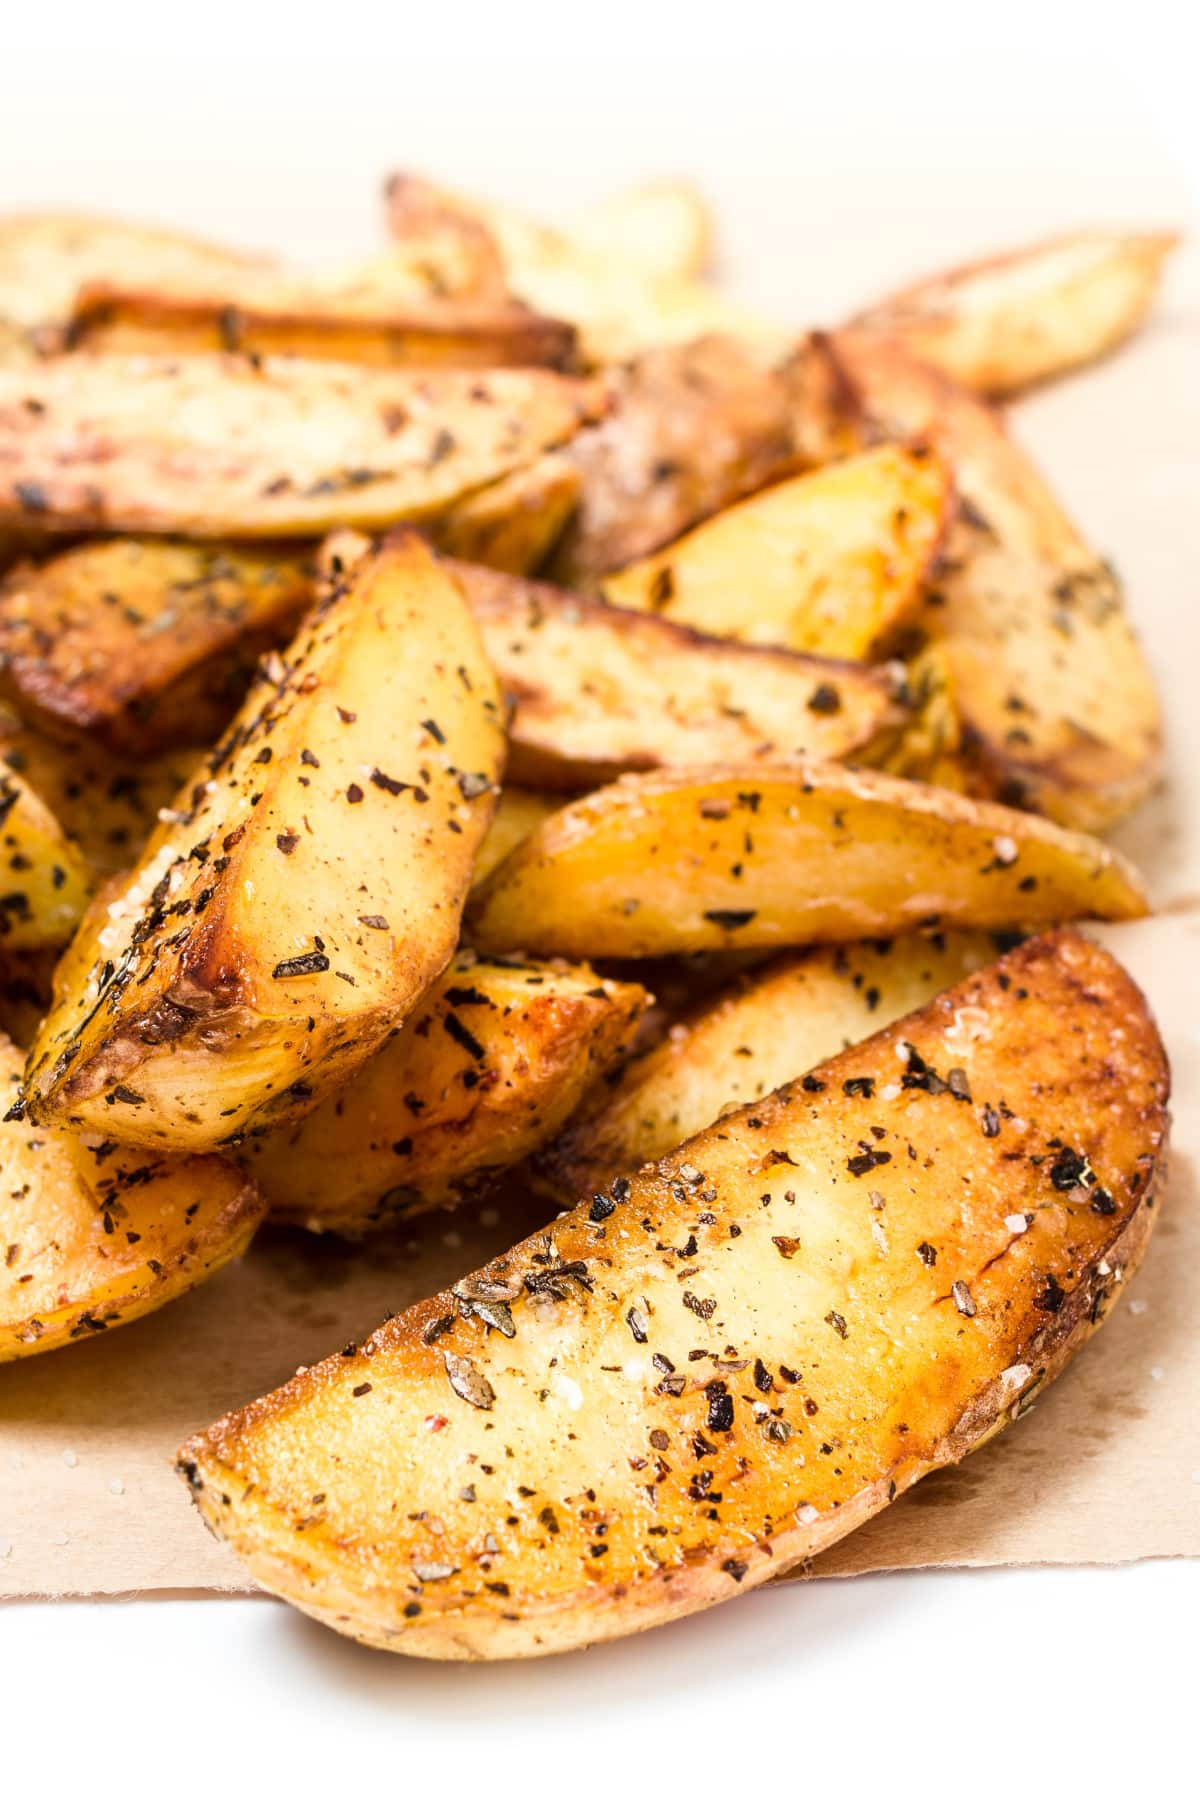 closeup of air fryer potato wedges with seasoning and golden crispy edges